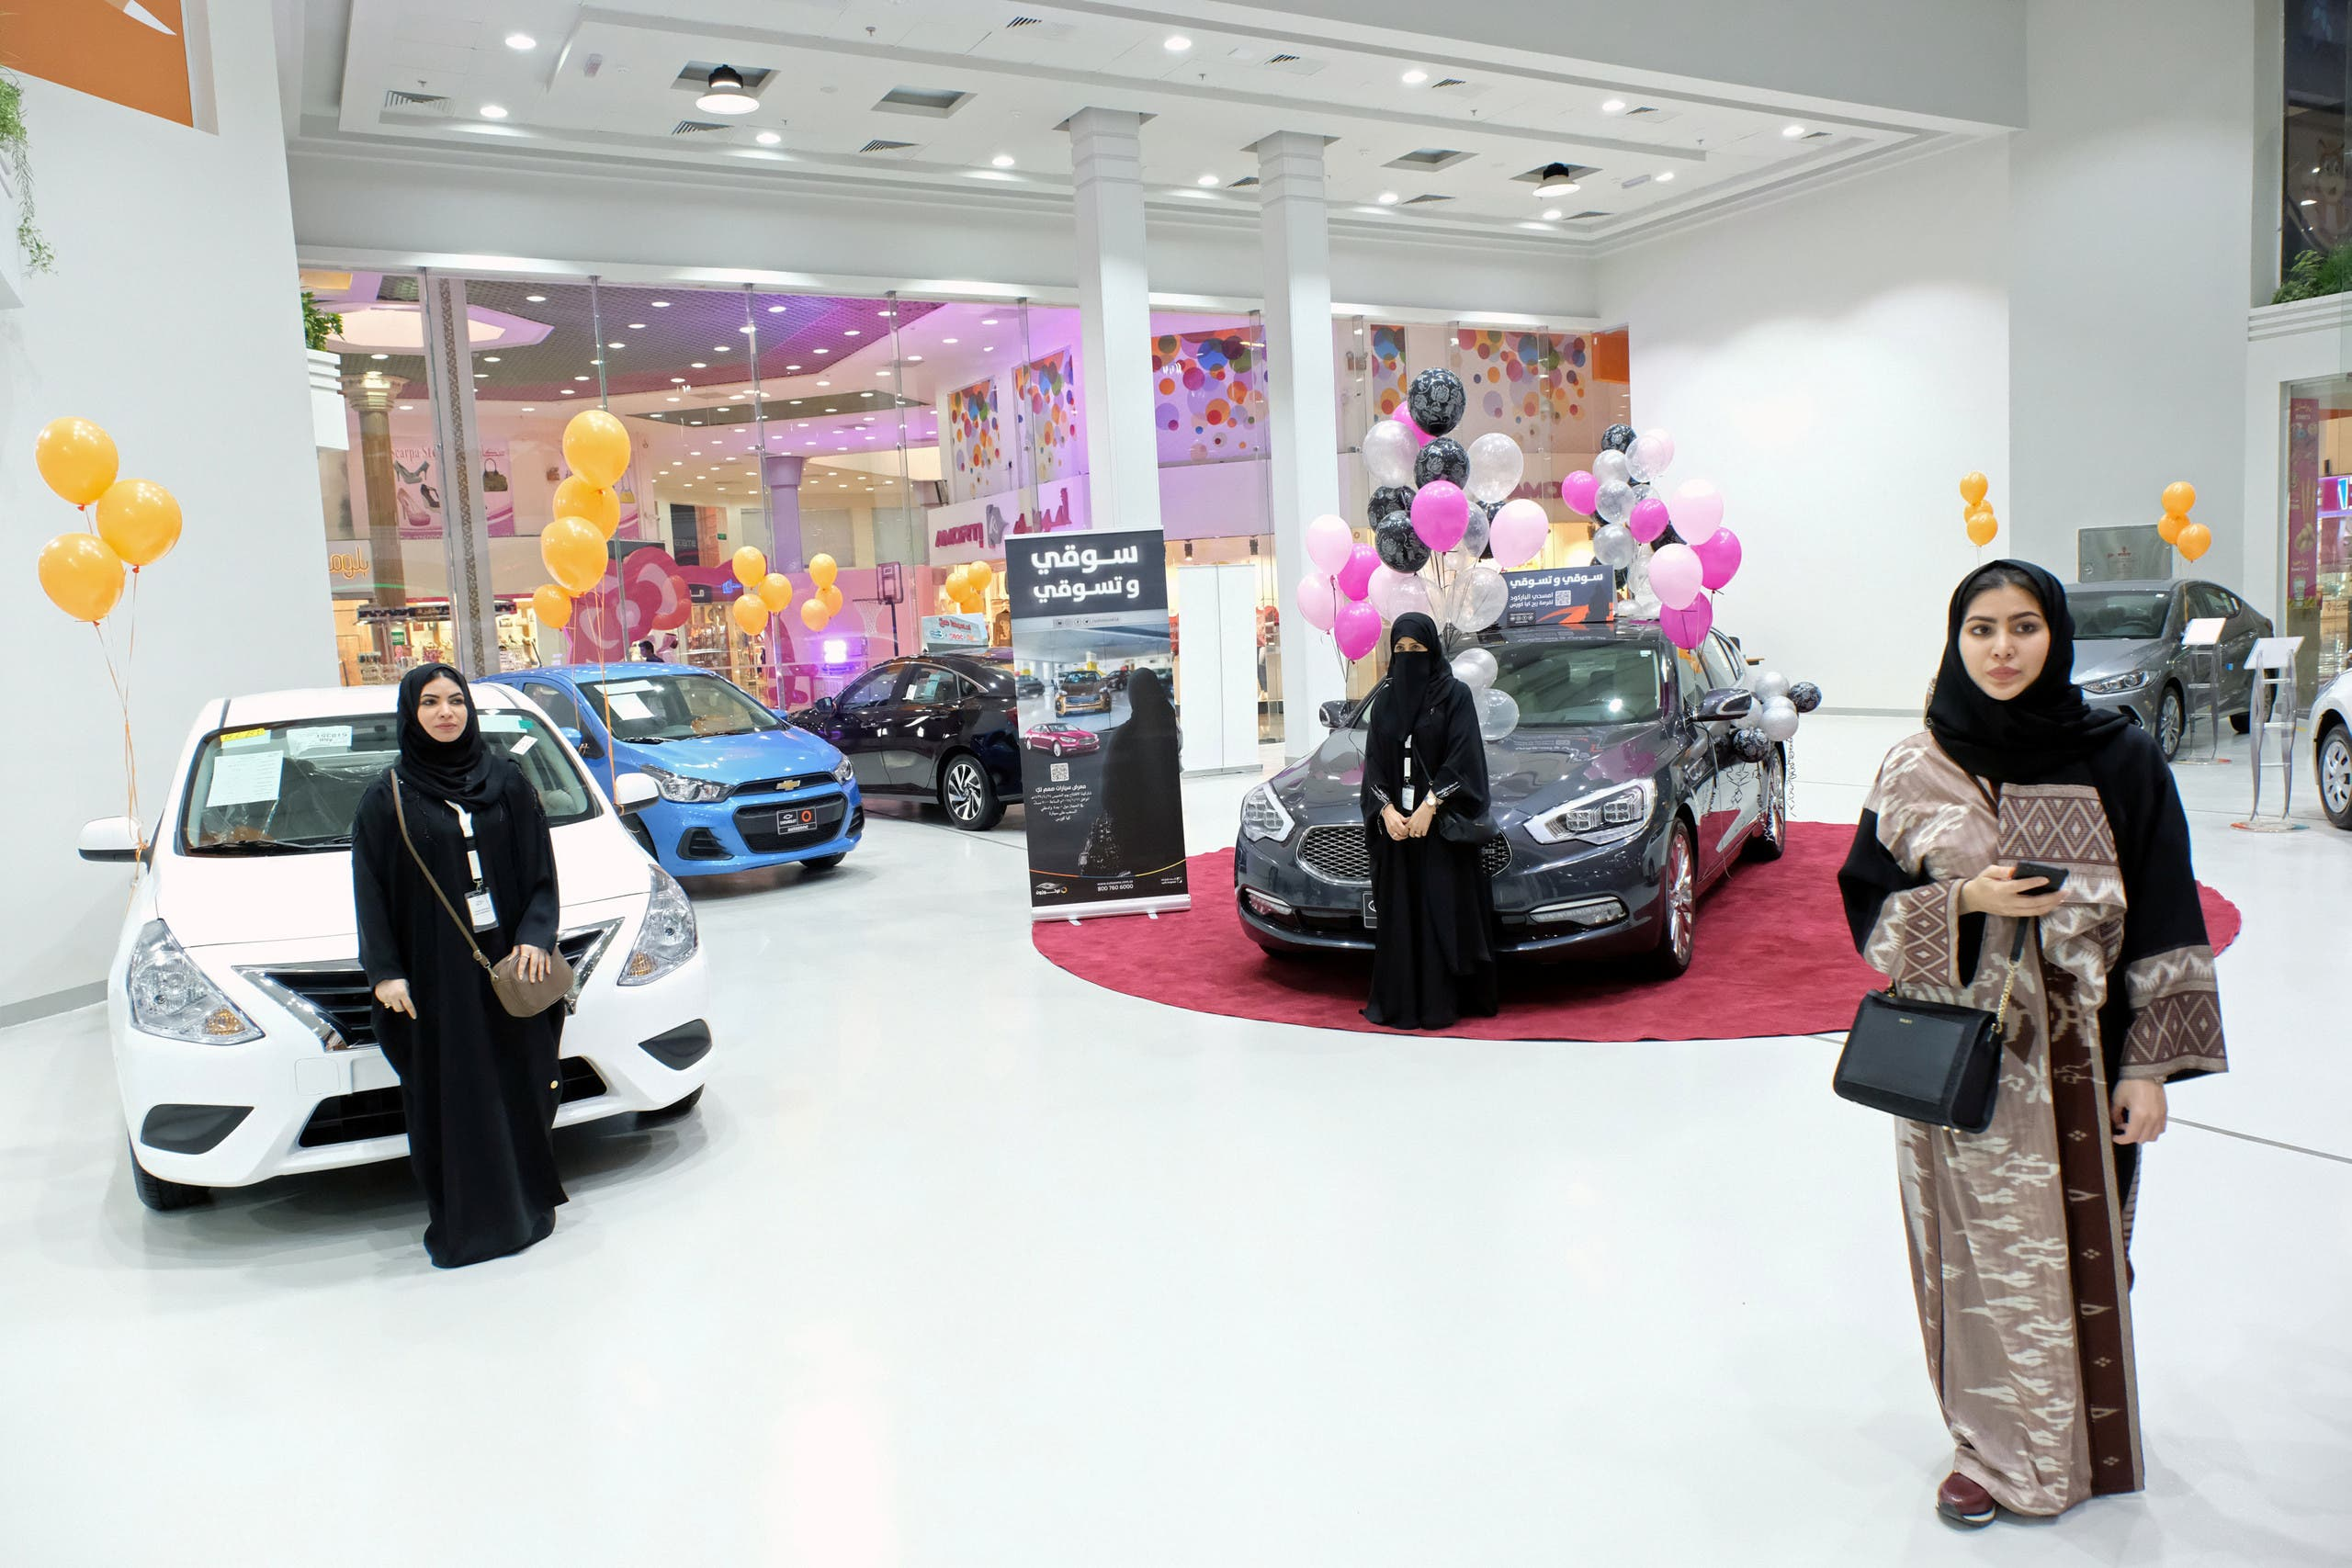 Pink, orange and yellow balloons hung in the mall's showroom as women posed for photos and selfies in front of the cars. (Reuters)